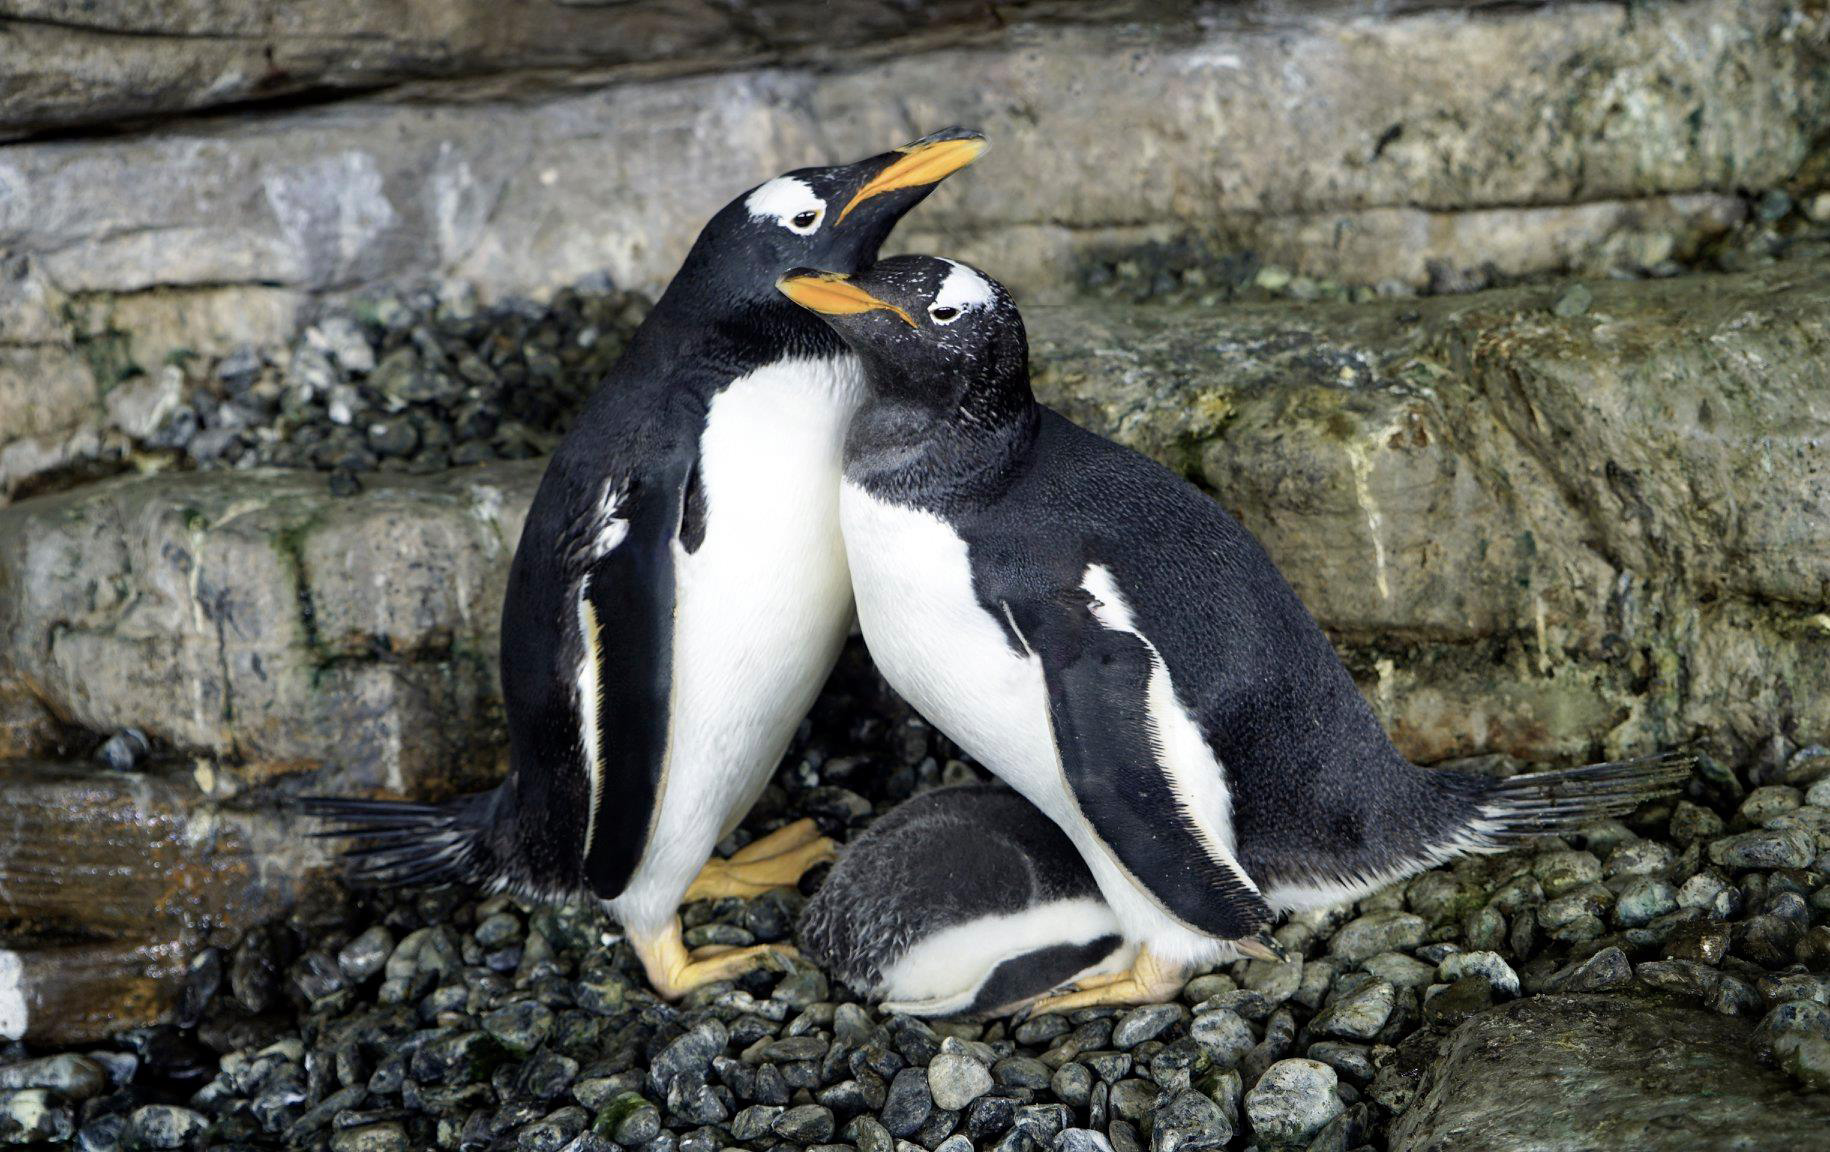 Same-Sex Penguin Couple Become Proud Parents After Hatching an Adopted Egg at Valencia Aquarium